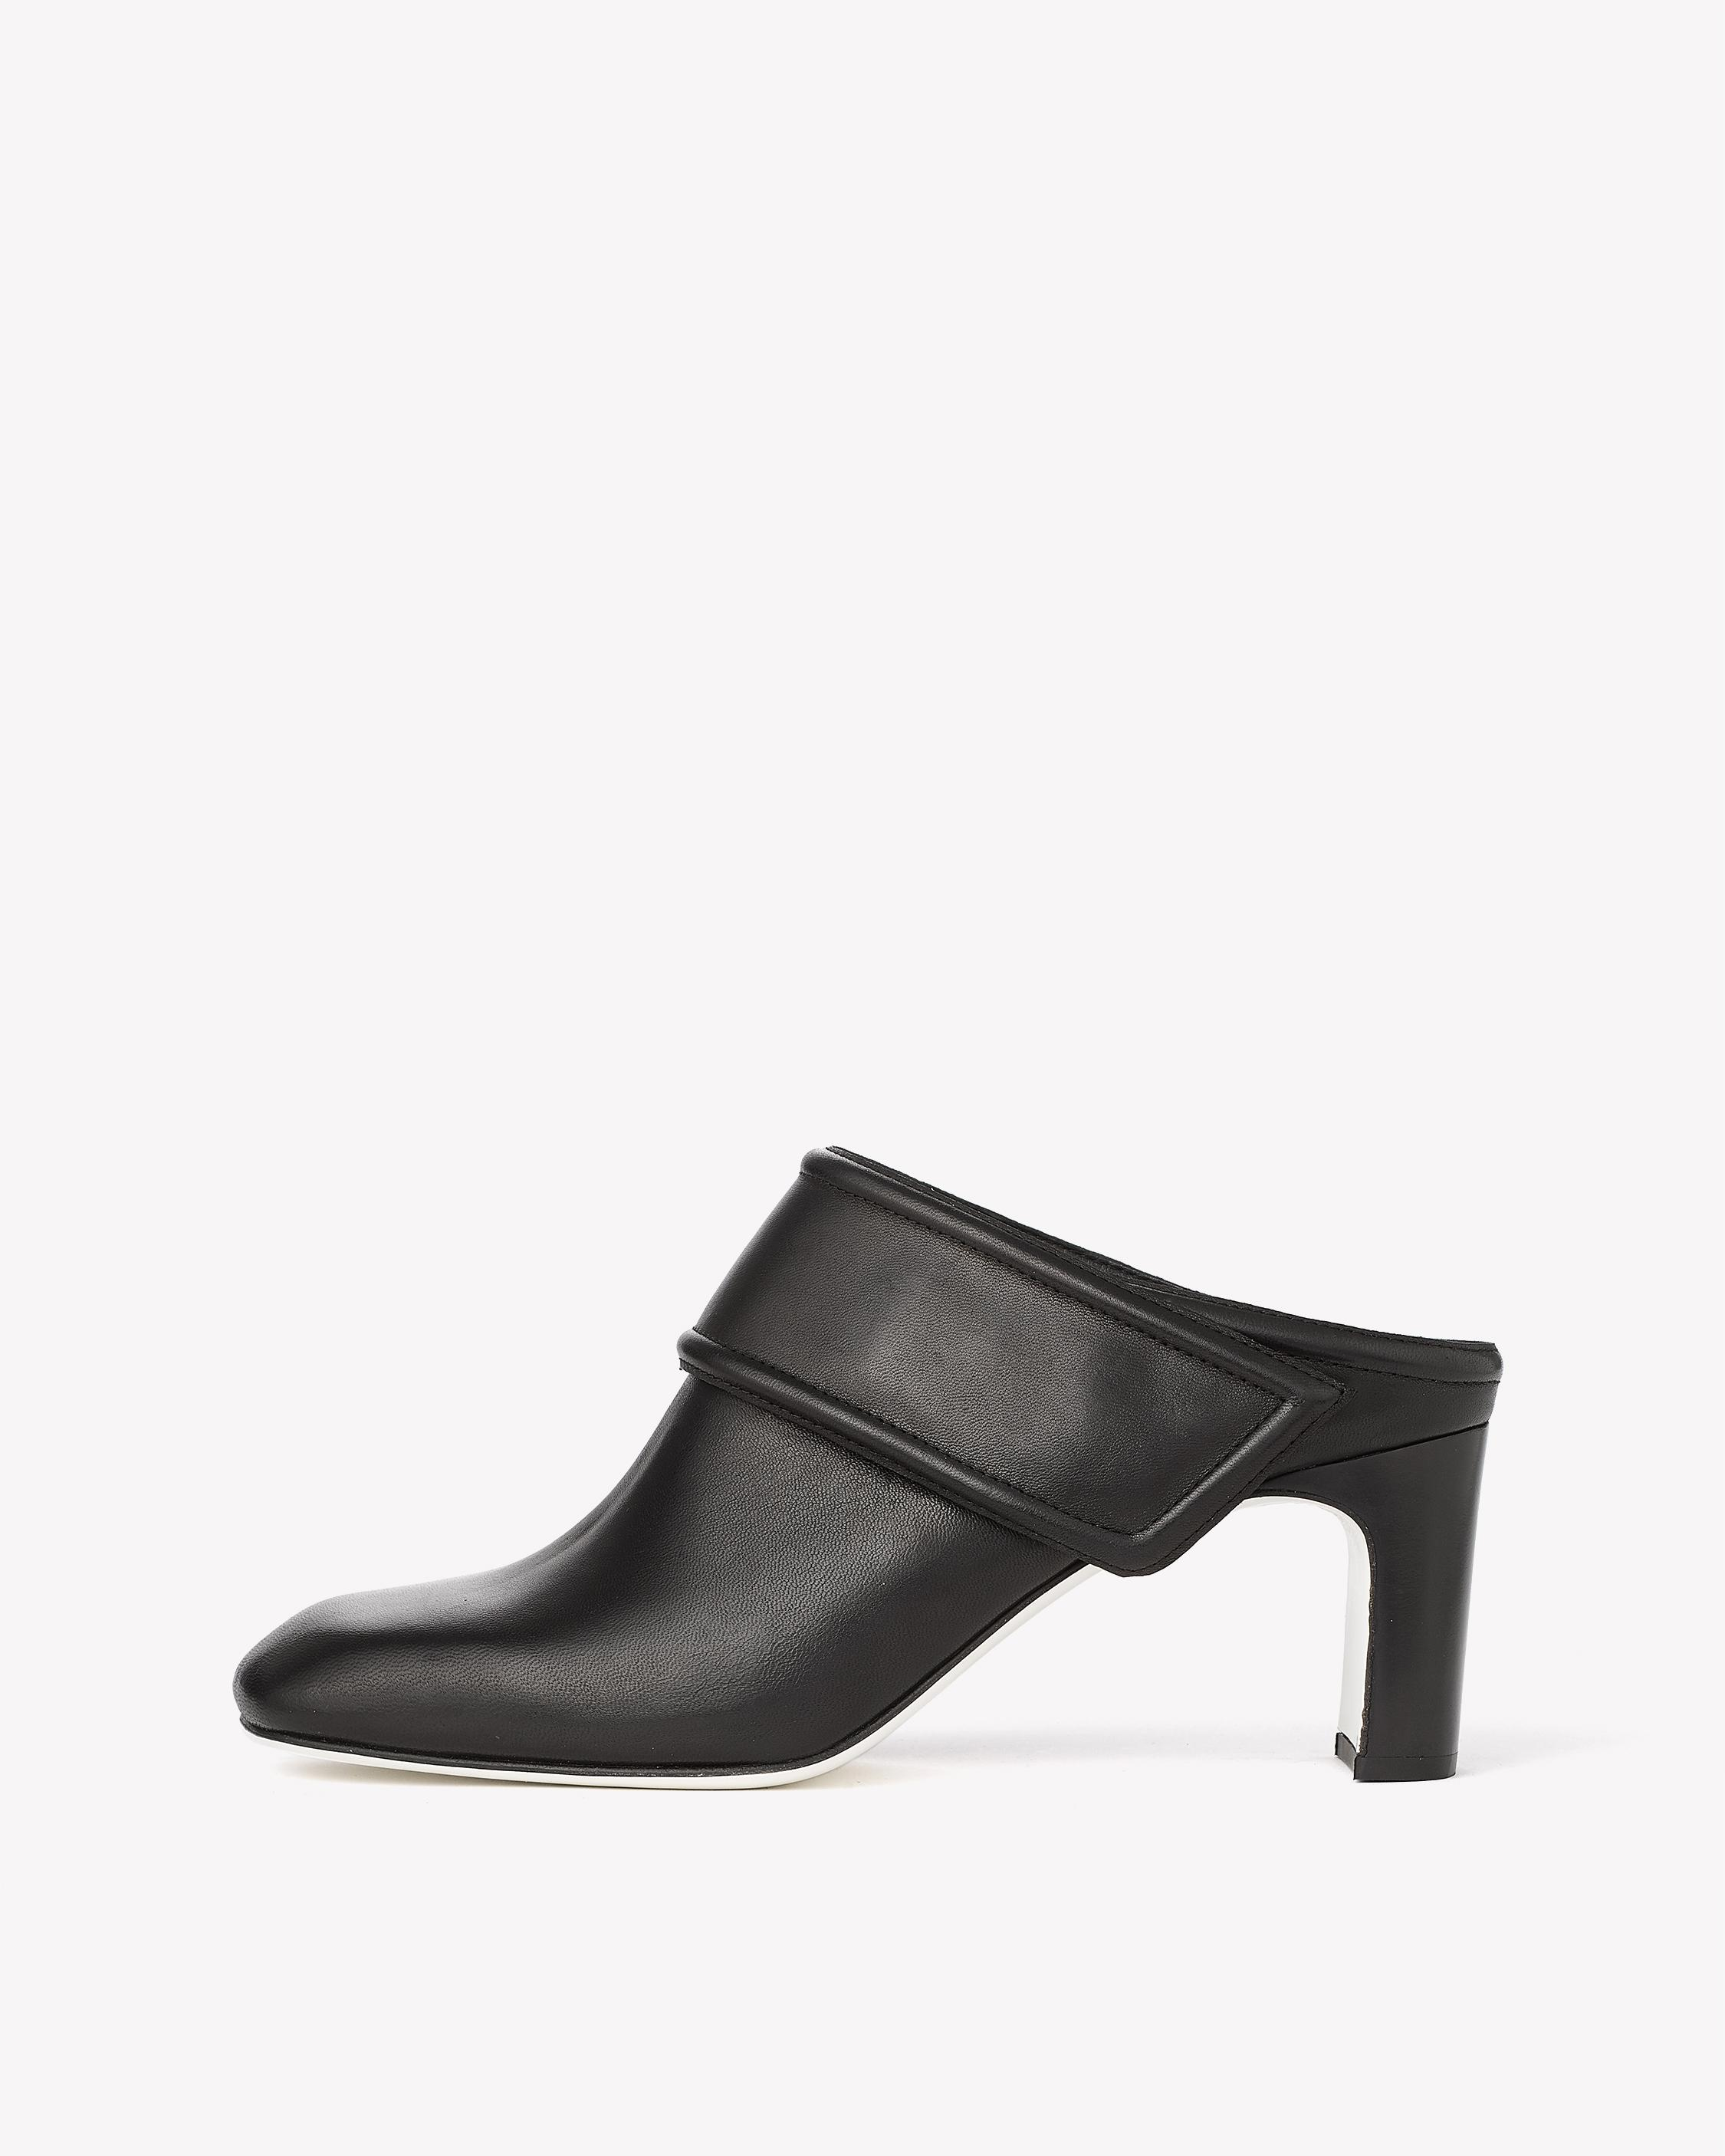 Womens Shoes Boots To Loafers Sandals With An Urban Edge Rag D Island Slip On New Driving Comfort Leather Black Elliot Mid Heel